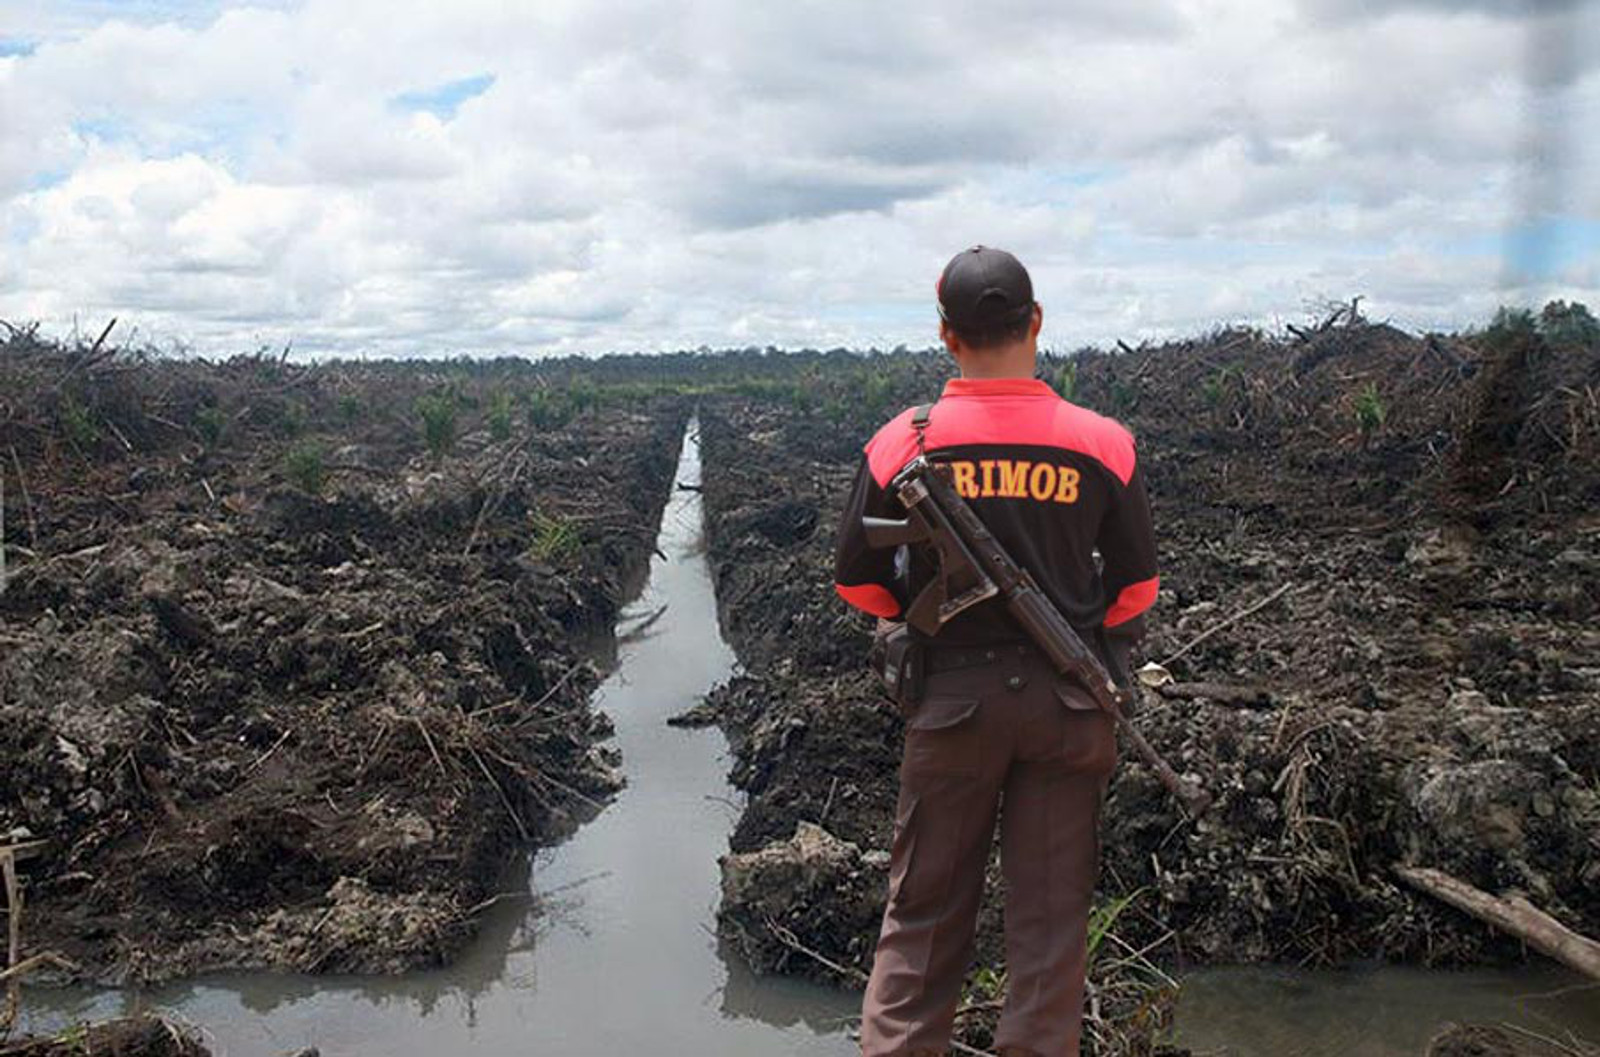 Human Rights Abuse: The Palm Oil Industry's Best Hidden Secret